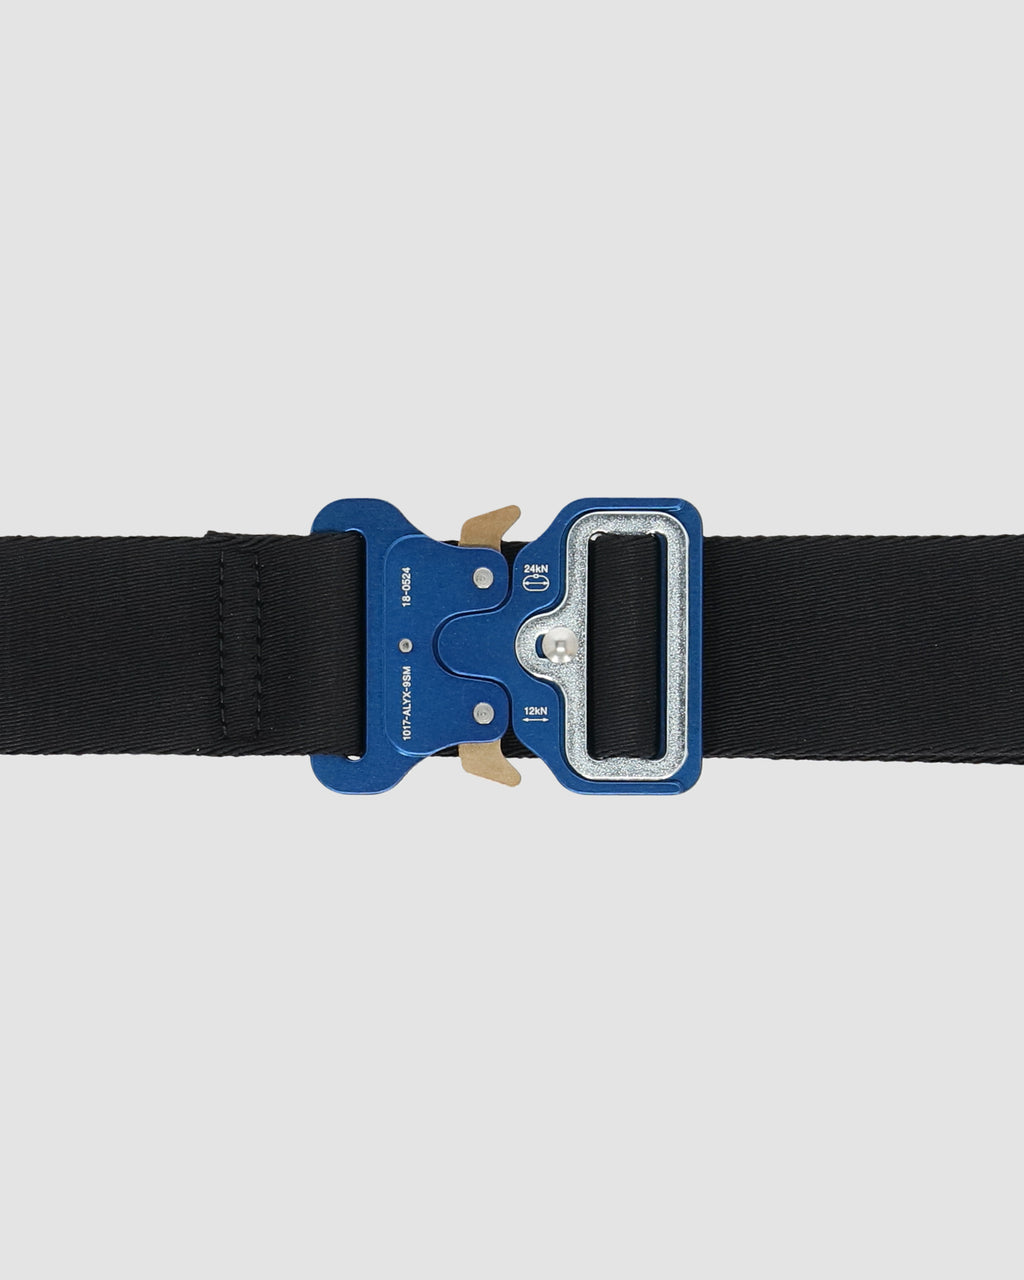 1017 ALYX 9SM | CLASSIC ROLLERCOASTER BELT W LOGO | Belt | Accessories, Belt, BELTS, BLACK/BLUE, F19, Google Shopping, Man, UNISEX, Woman